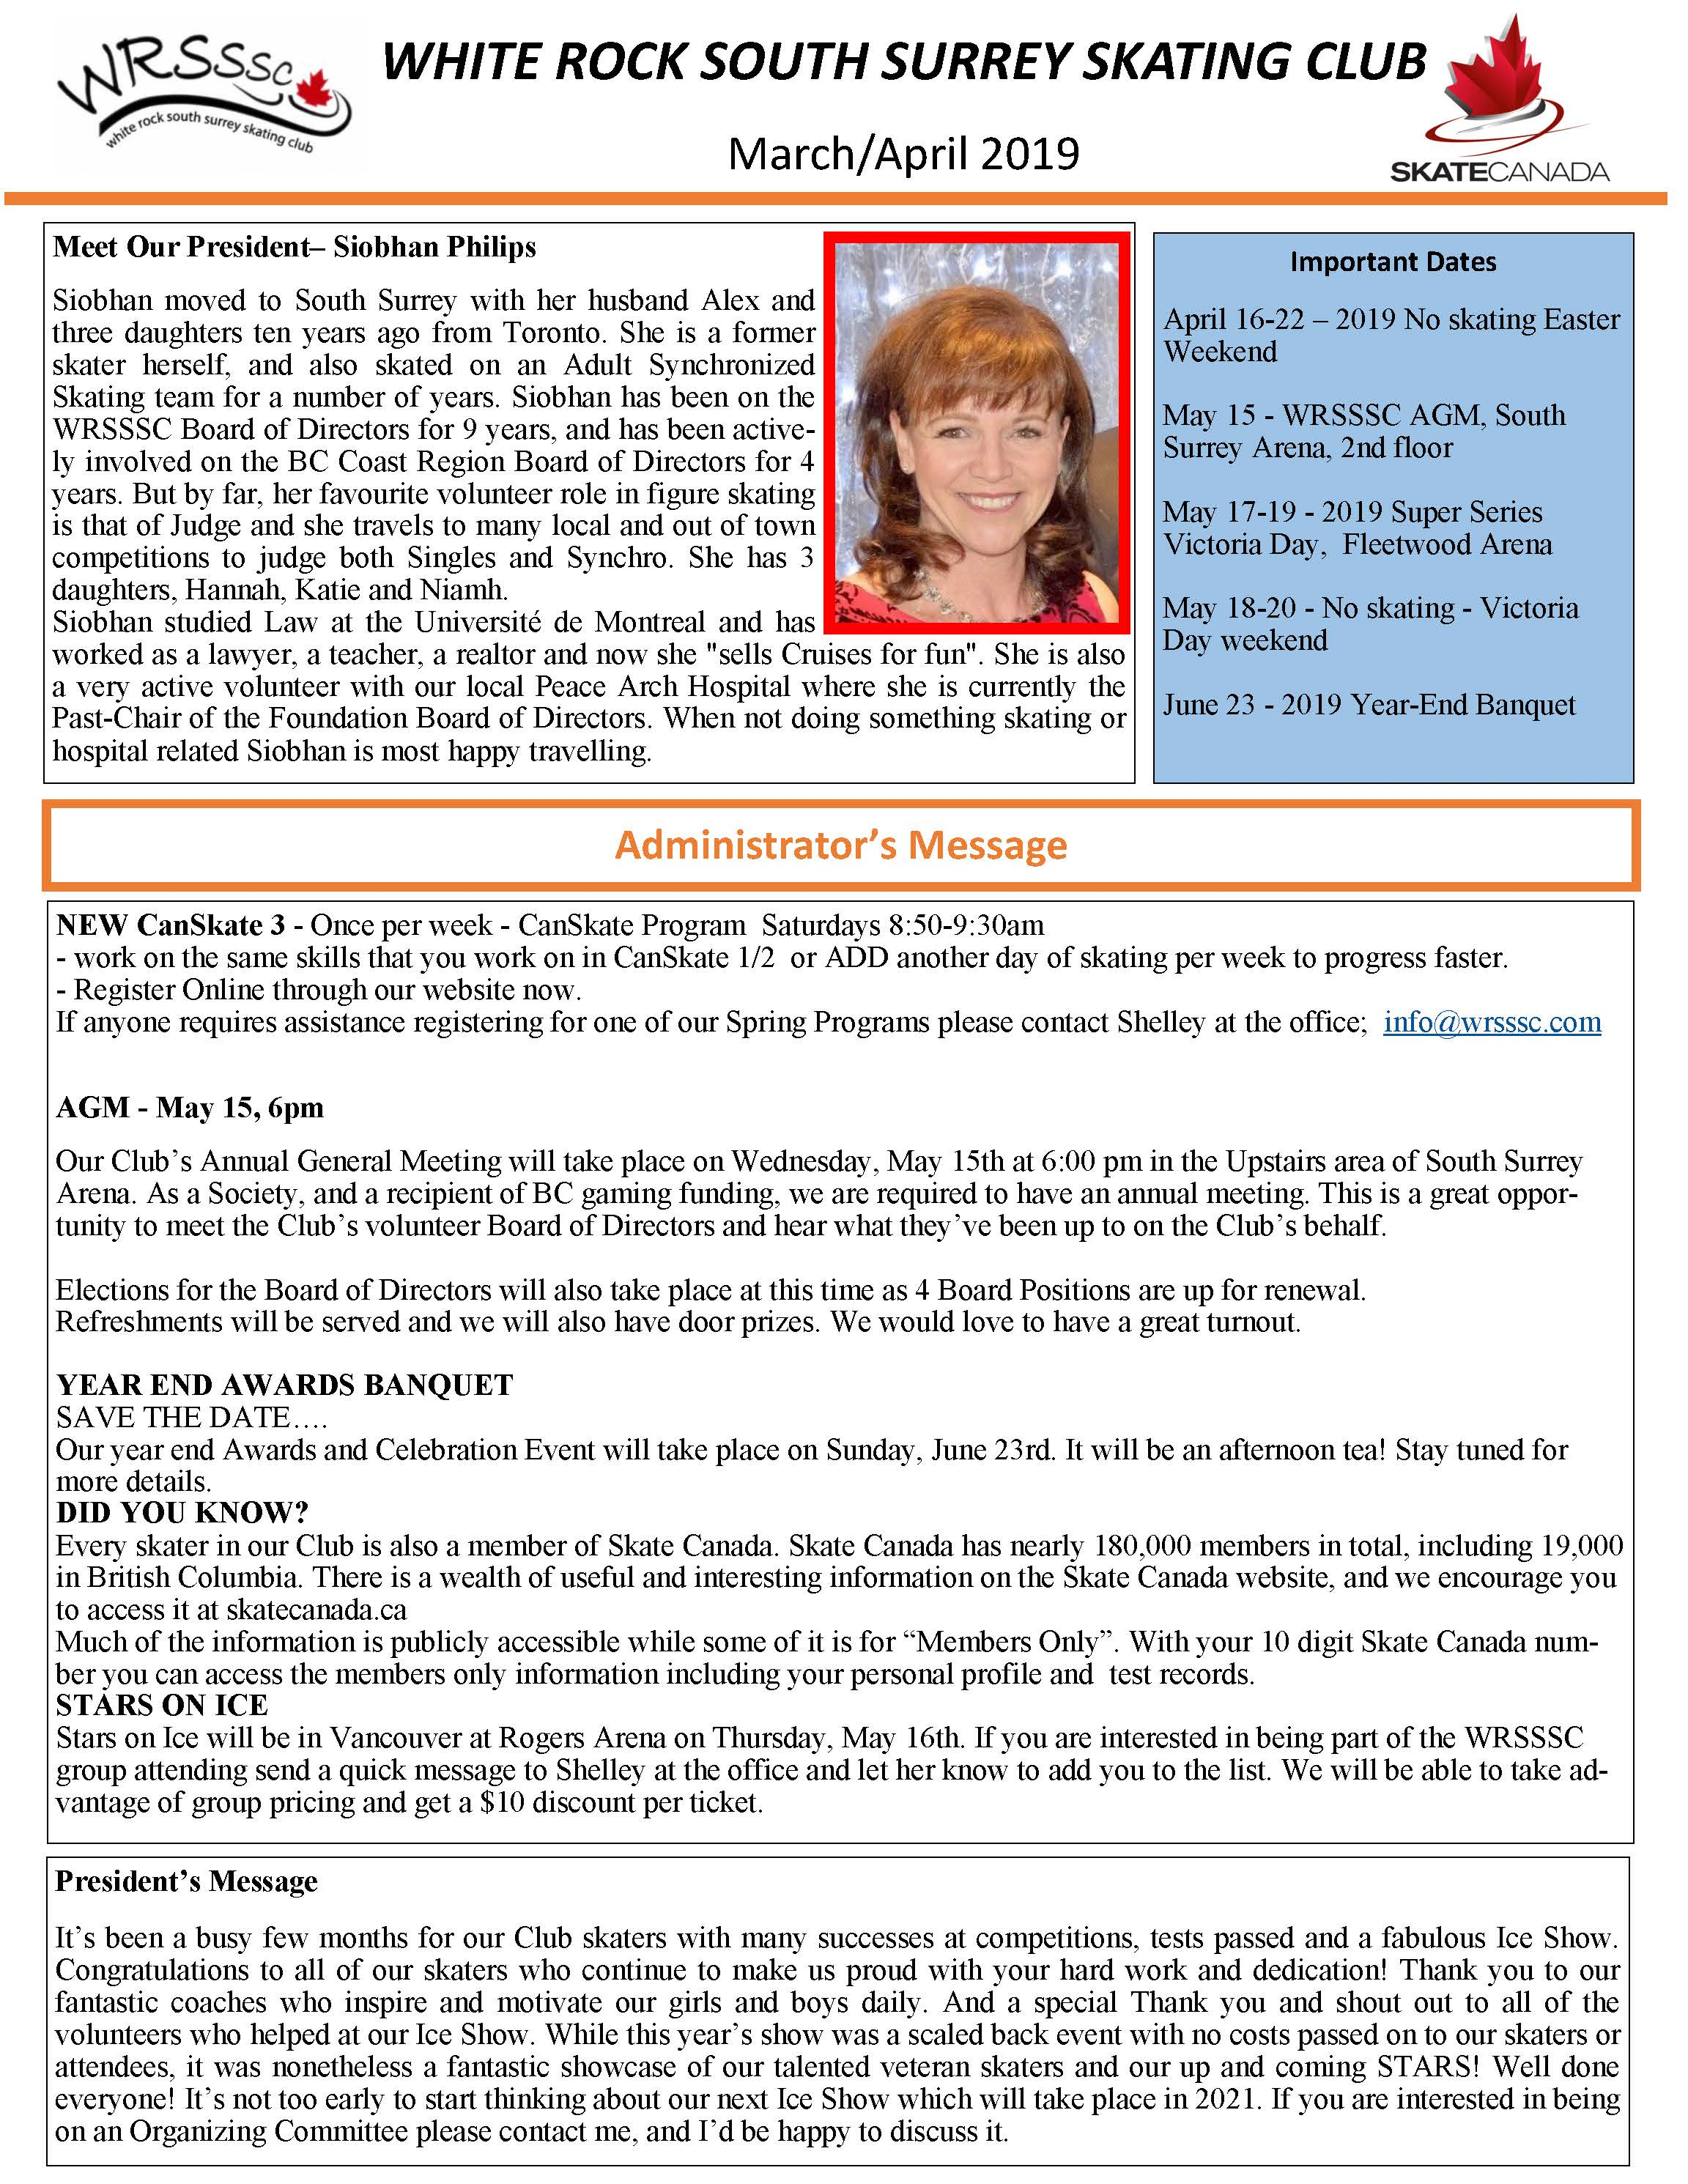 WRSSSC Newsletter March-April 2019_Page_1.jpg